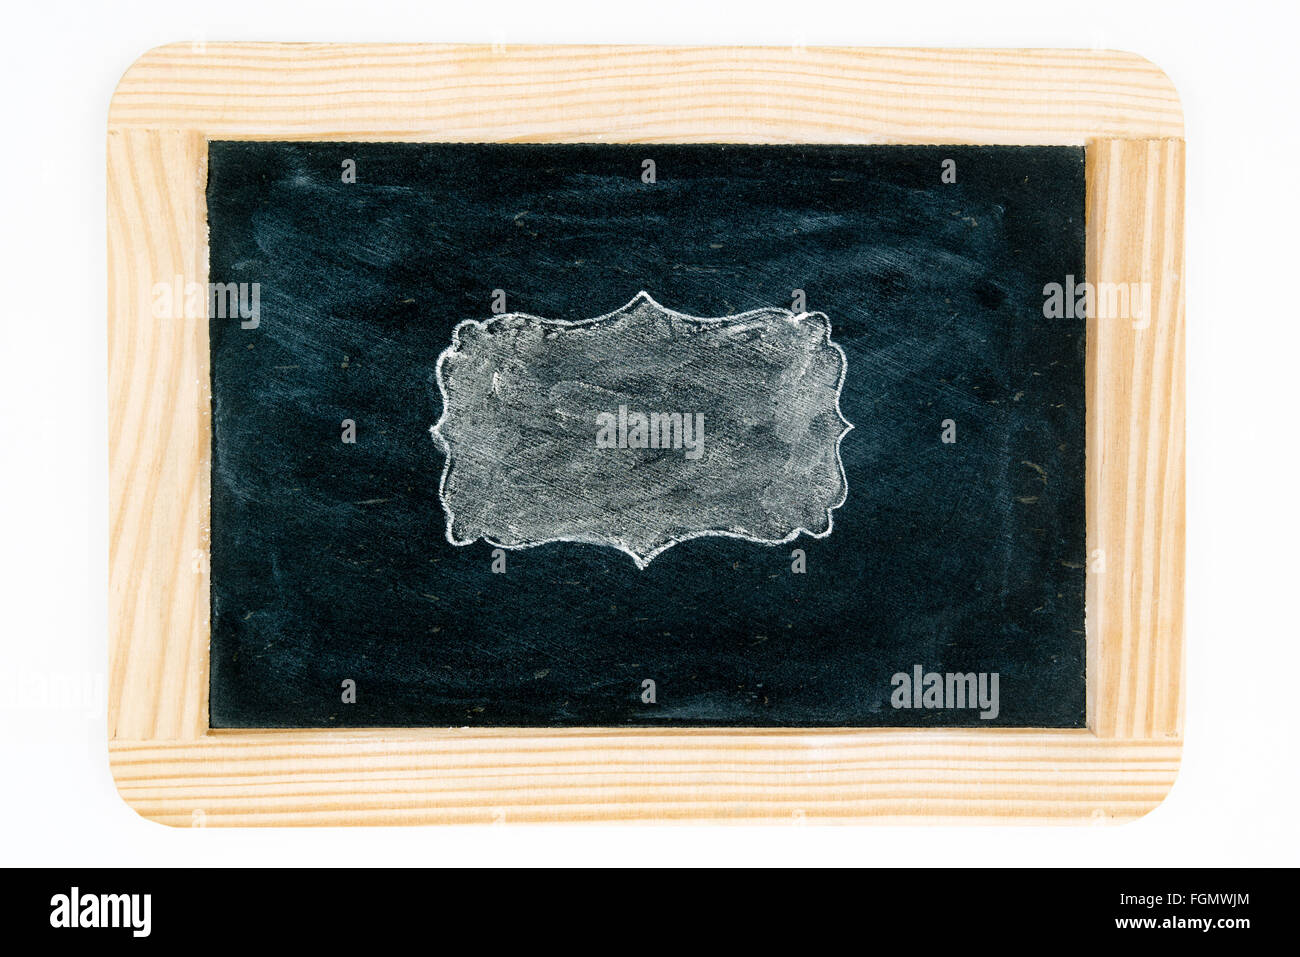 Wooden vintage chalkboard frame isolated on white with hand drawing ...